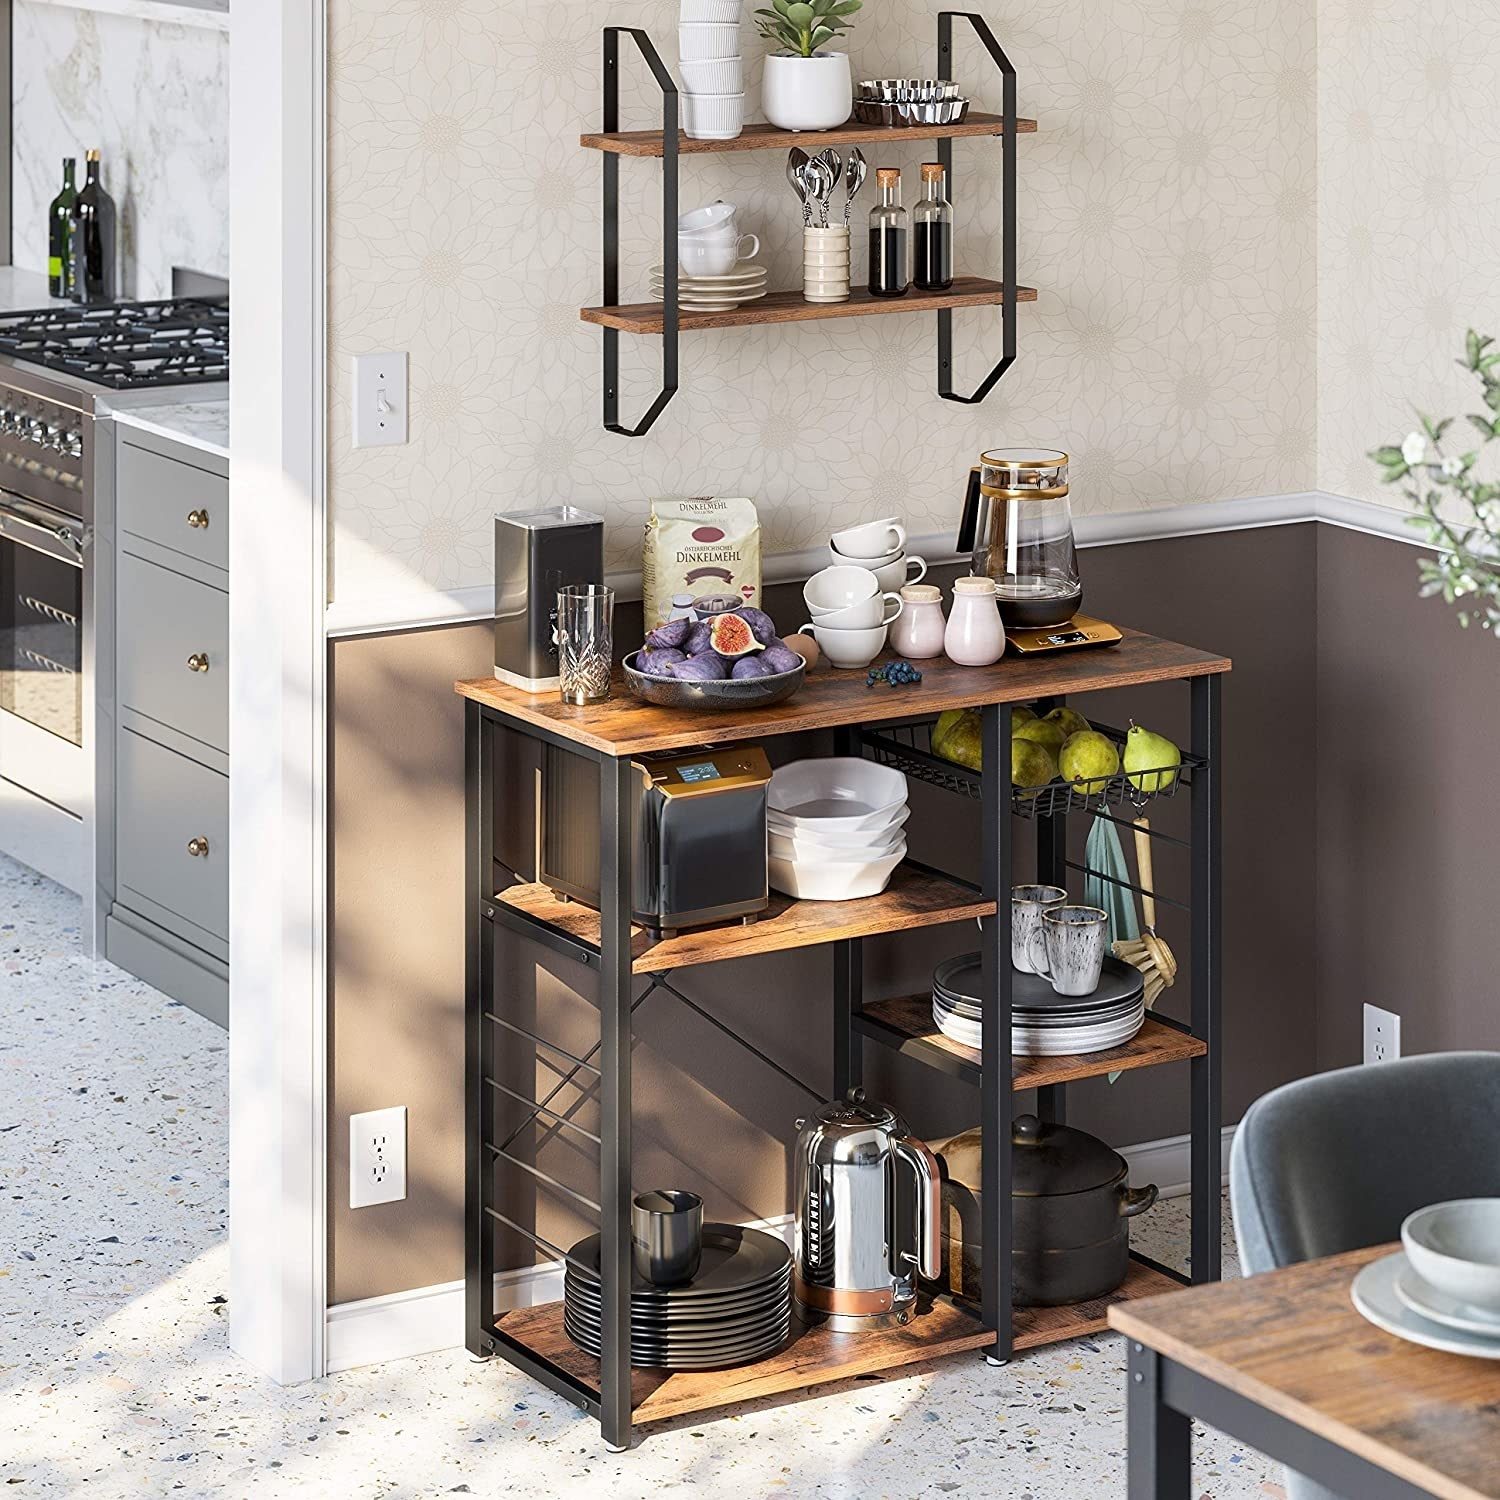 the kitchen rack with appliances and food on it